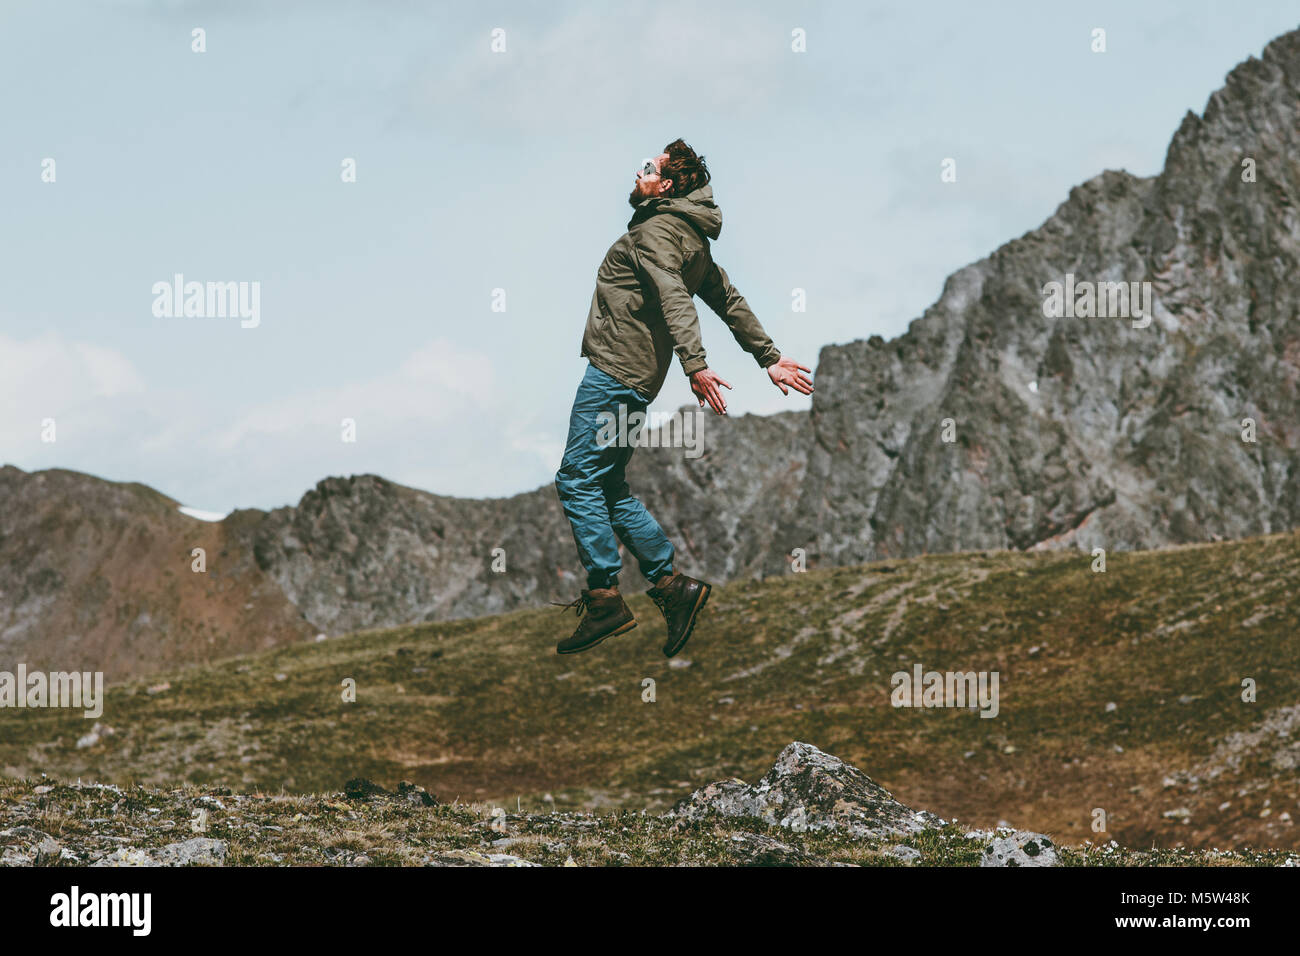 Travel Man jumping levitation outdoor on mountains lifestyle spiritual concept - Stock Image